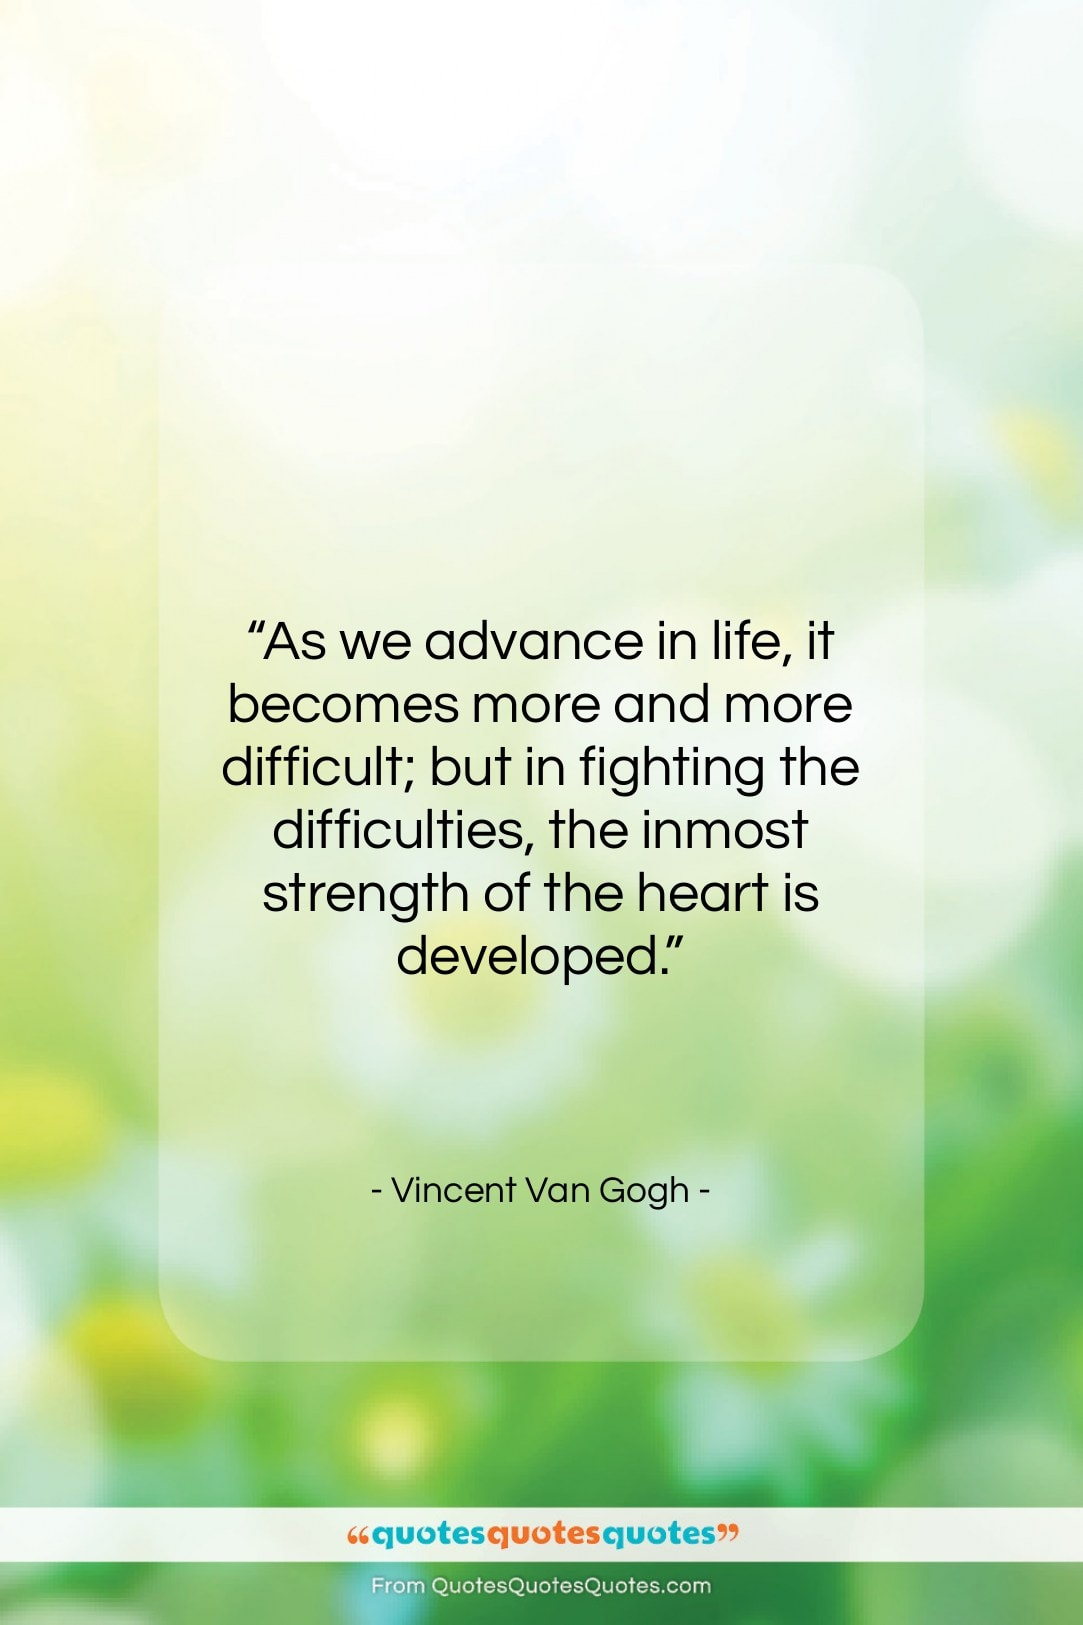 """Vincent Van Gogh quote: """"As we advance in life, it becomes…""""- at QuotesQuotesQuotes.com"""